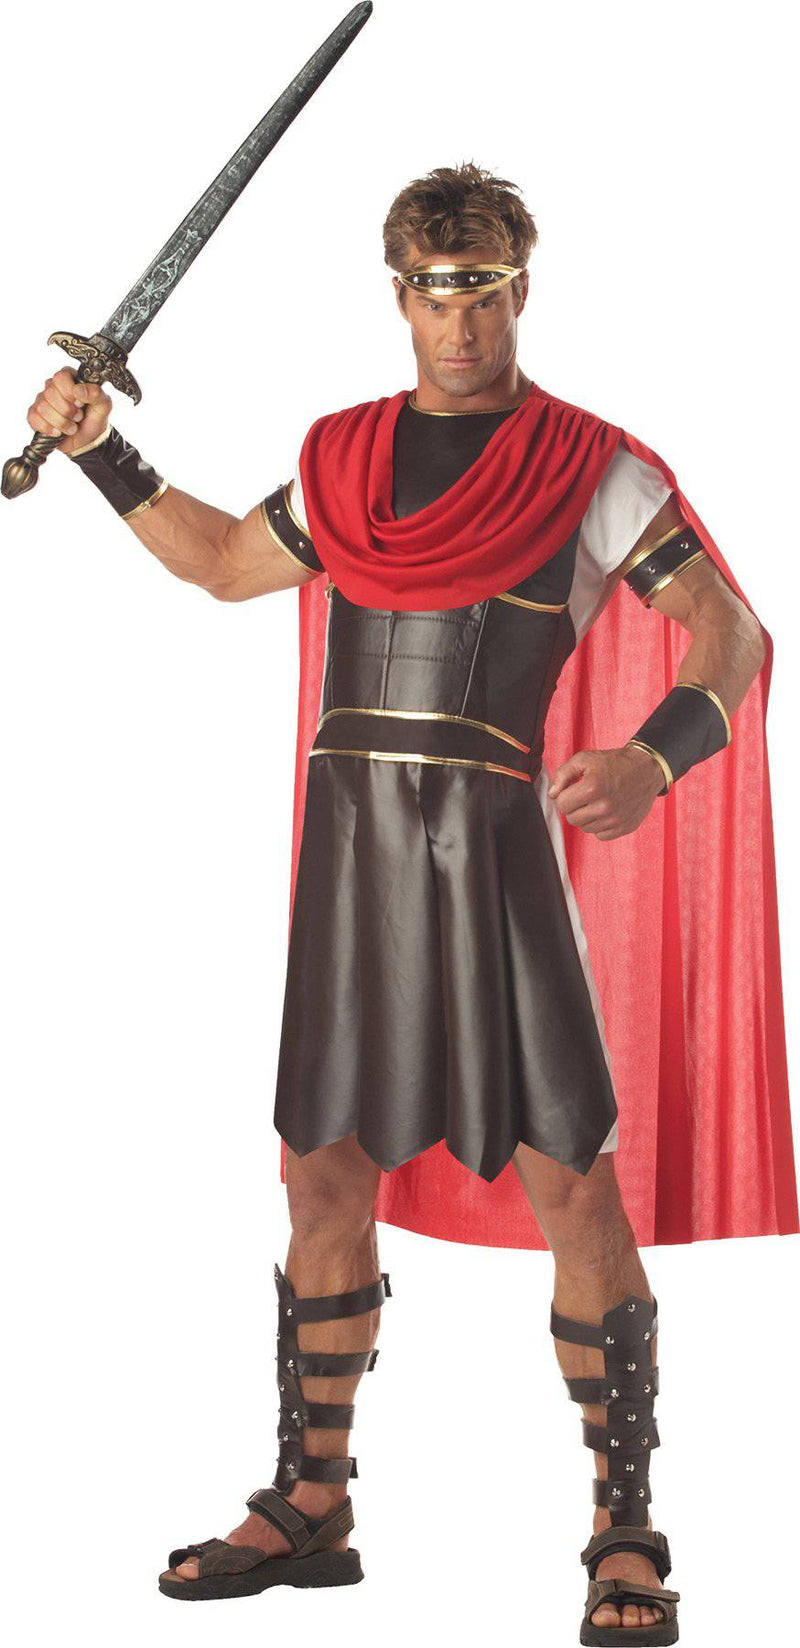 California Costumes Men's Greek Warrior Hercules Party Costume - Costume Arena